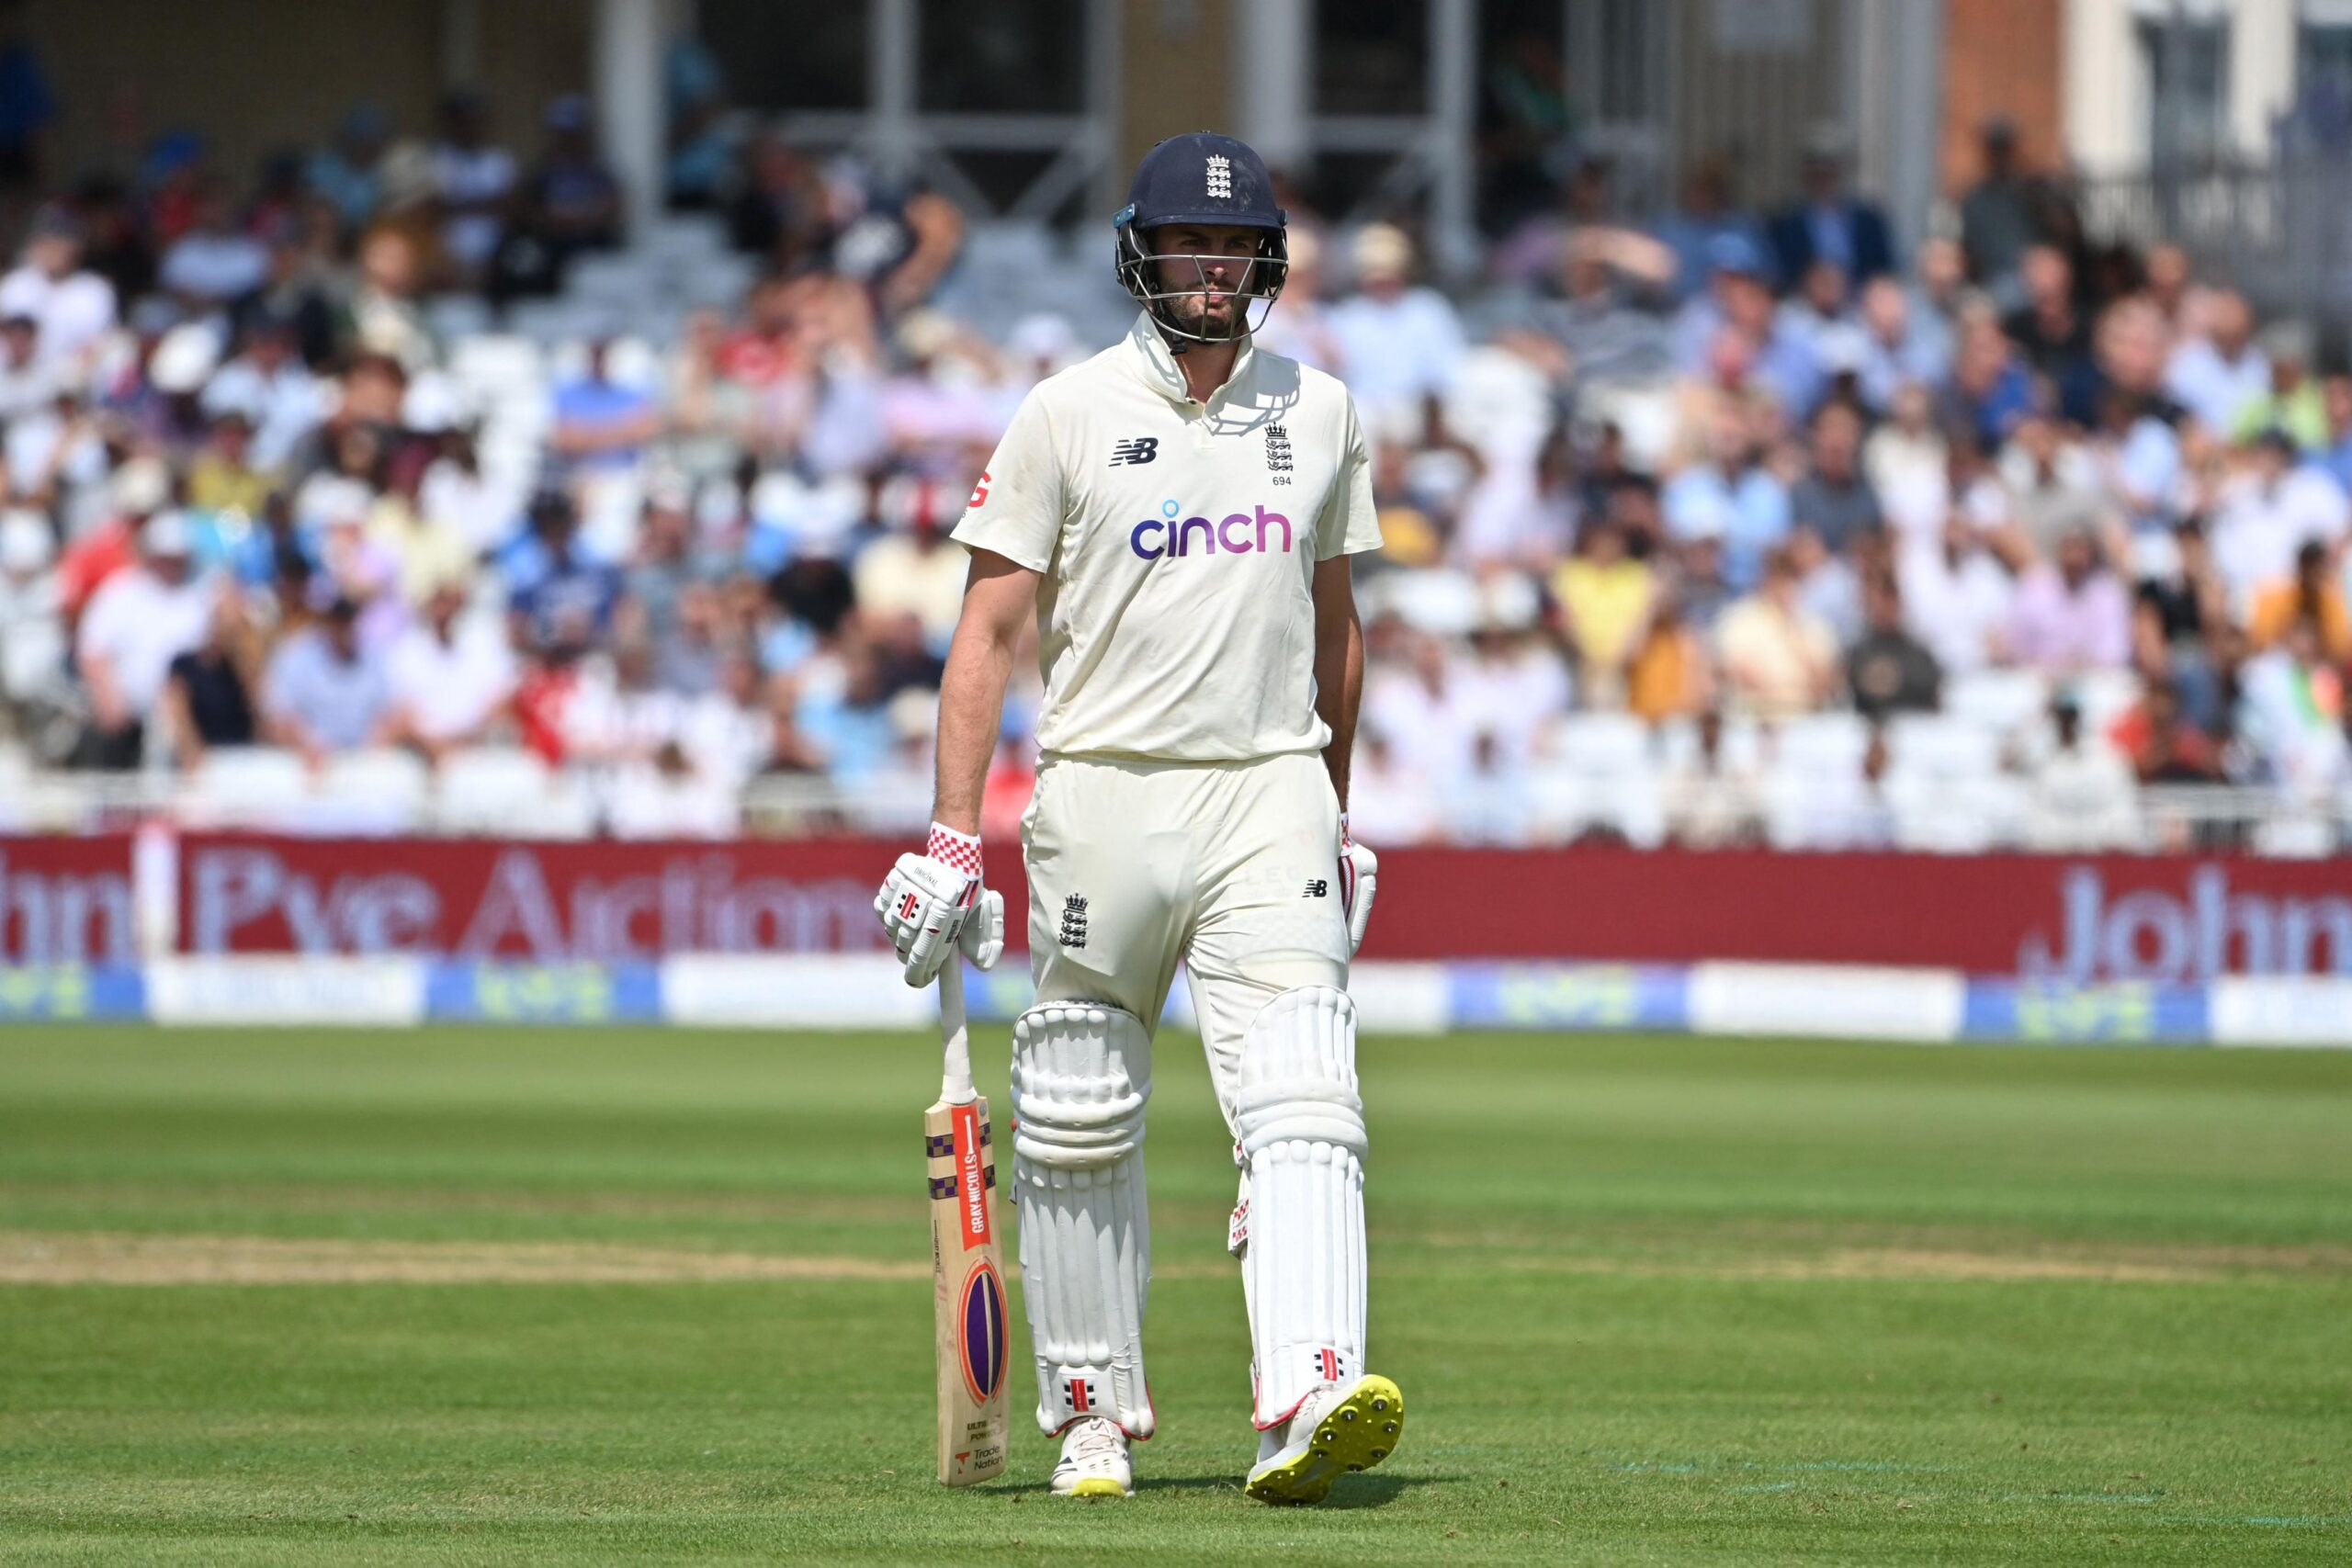 England vs India 2021: If You Are Stupid You Do Not Deserve To Win Test Matches - Geoffrey Boycott Blasts England After Loss